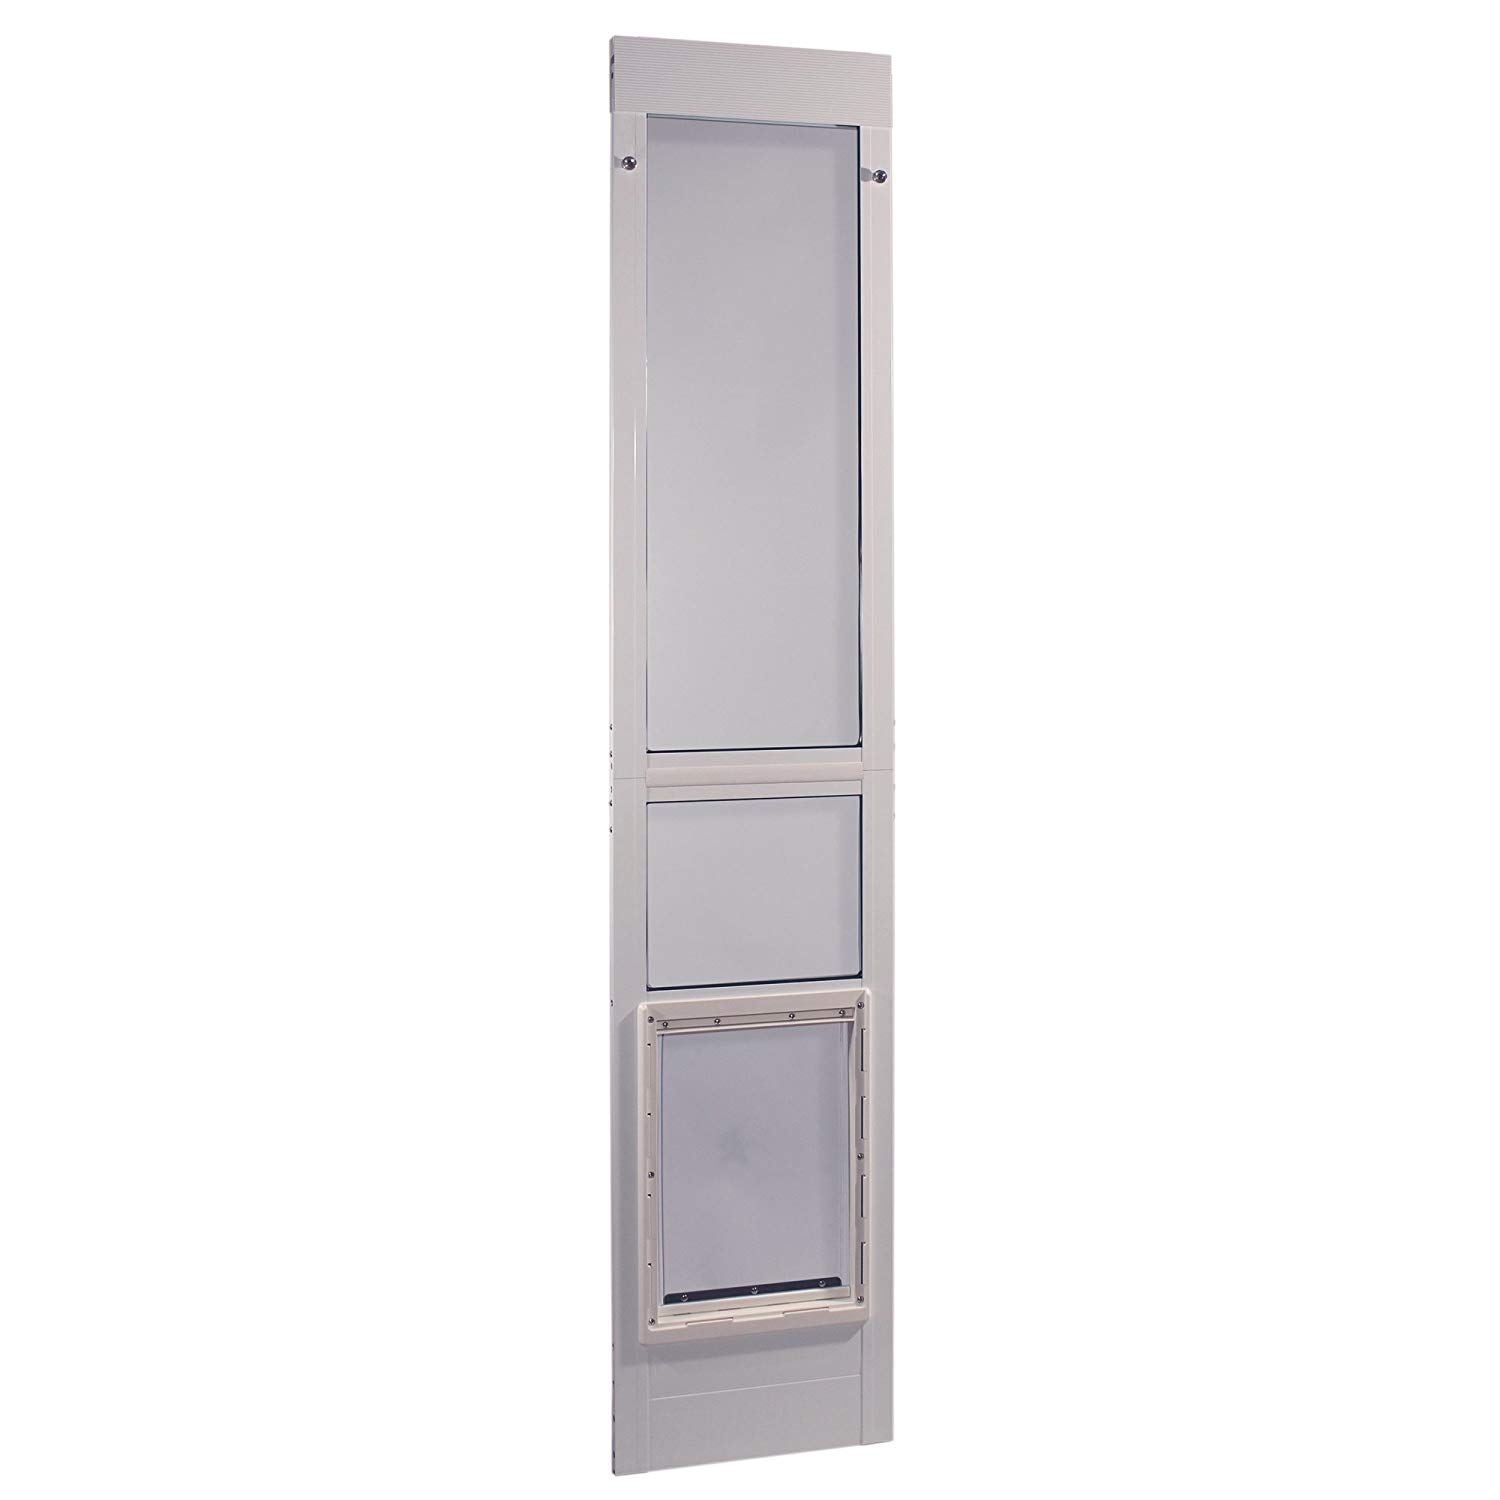 Ideal Pet Products Aluminum Modular Pet Patio Door